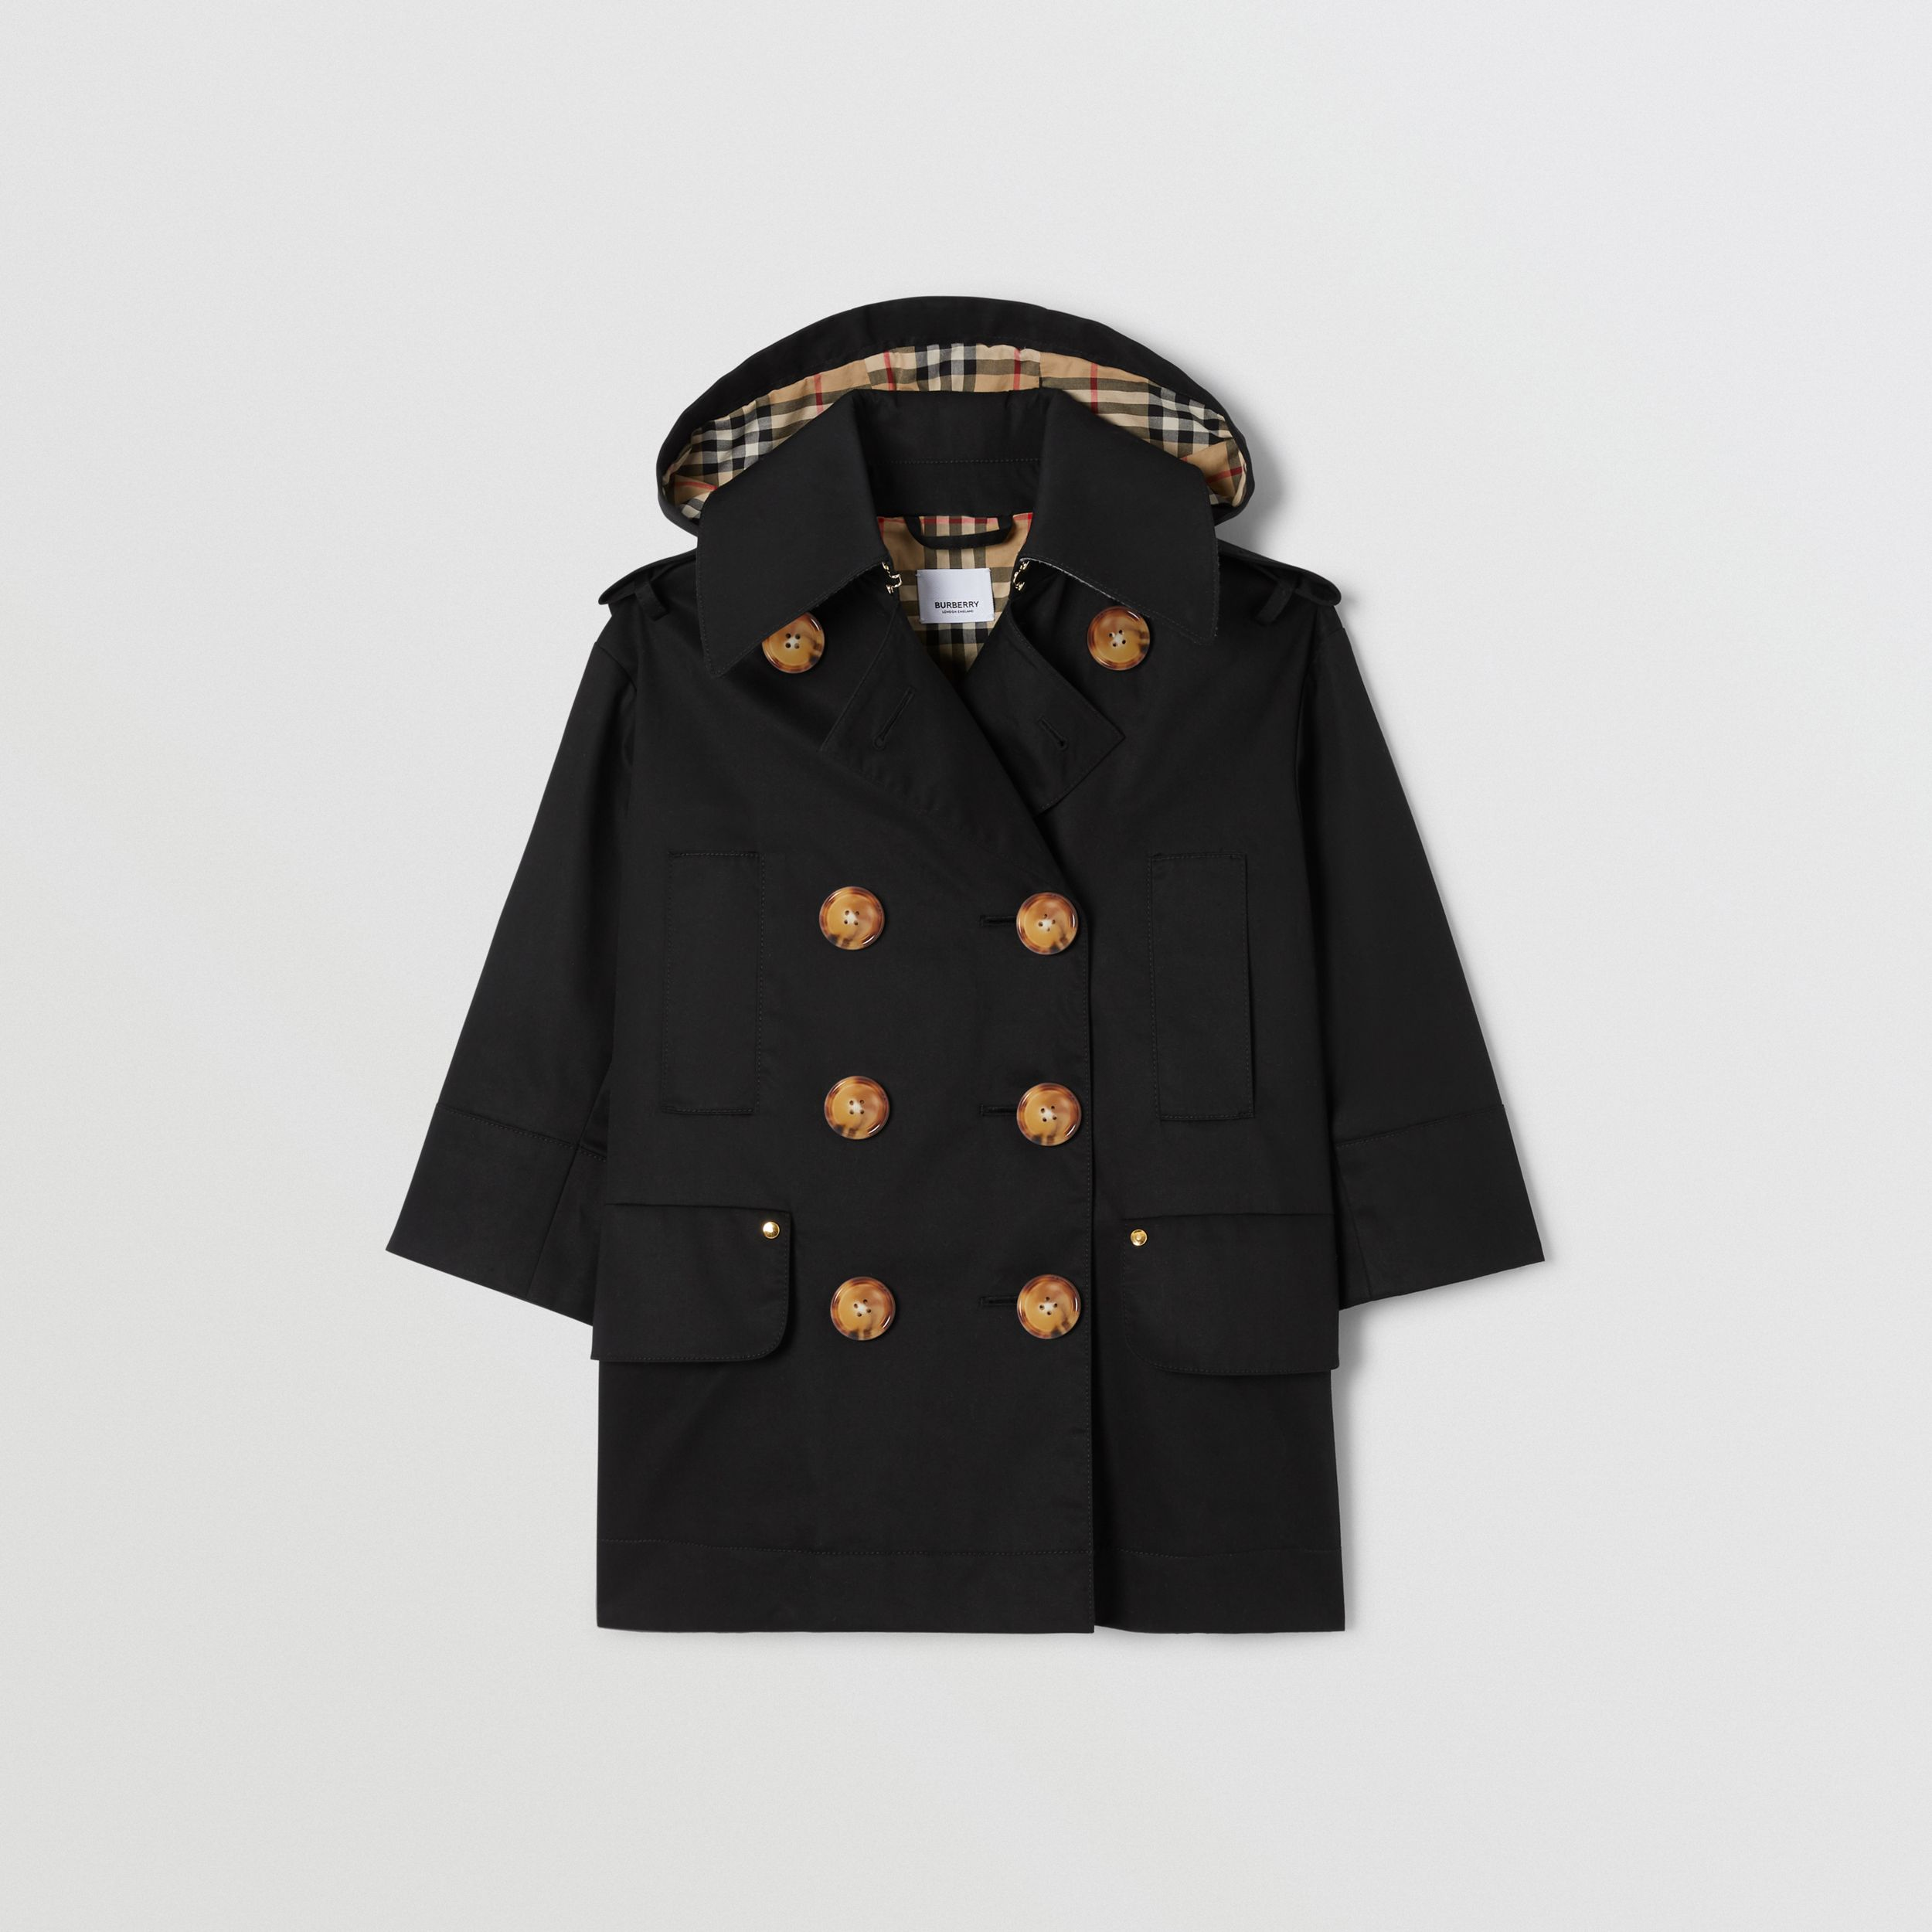 Cotton Twill Hooded Trench Coat in Black | Burberry - 1